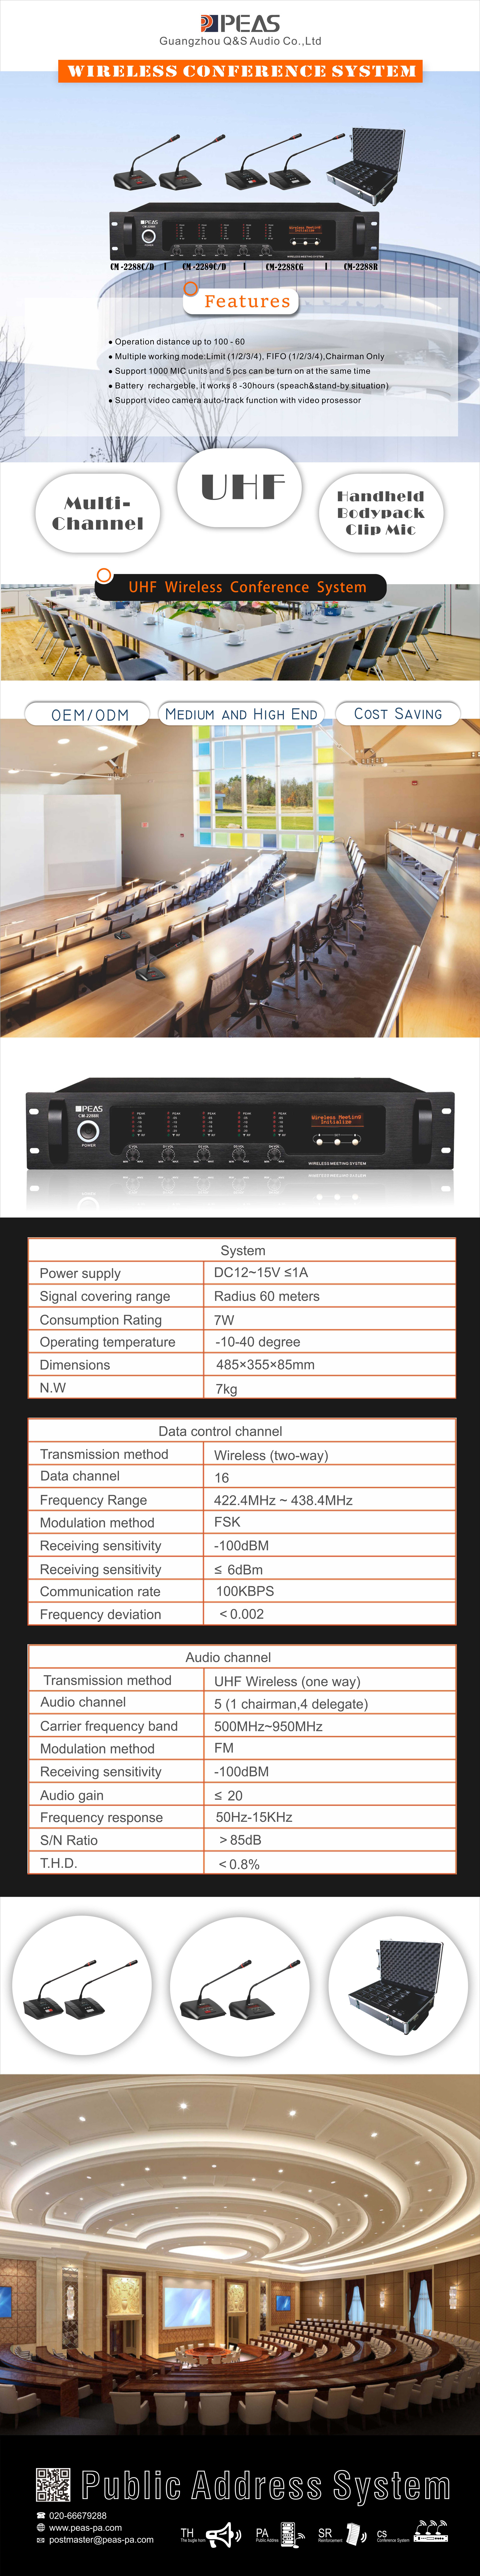 Wireless-Conference-System